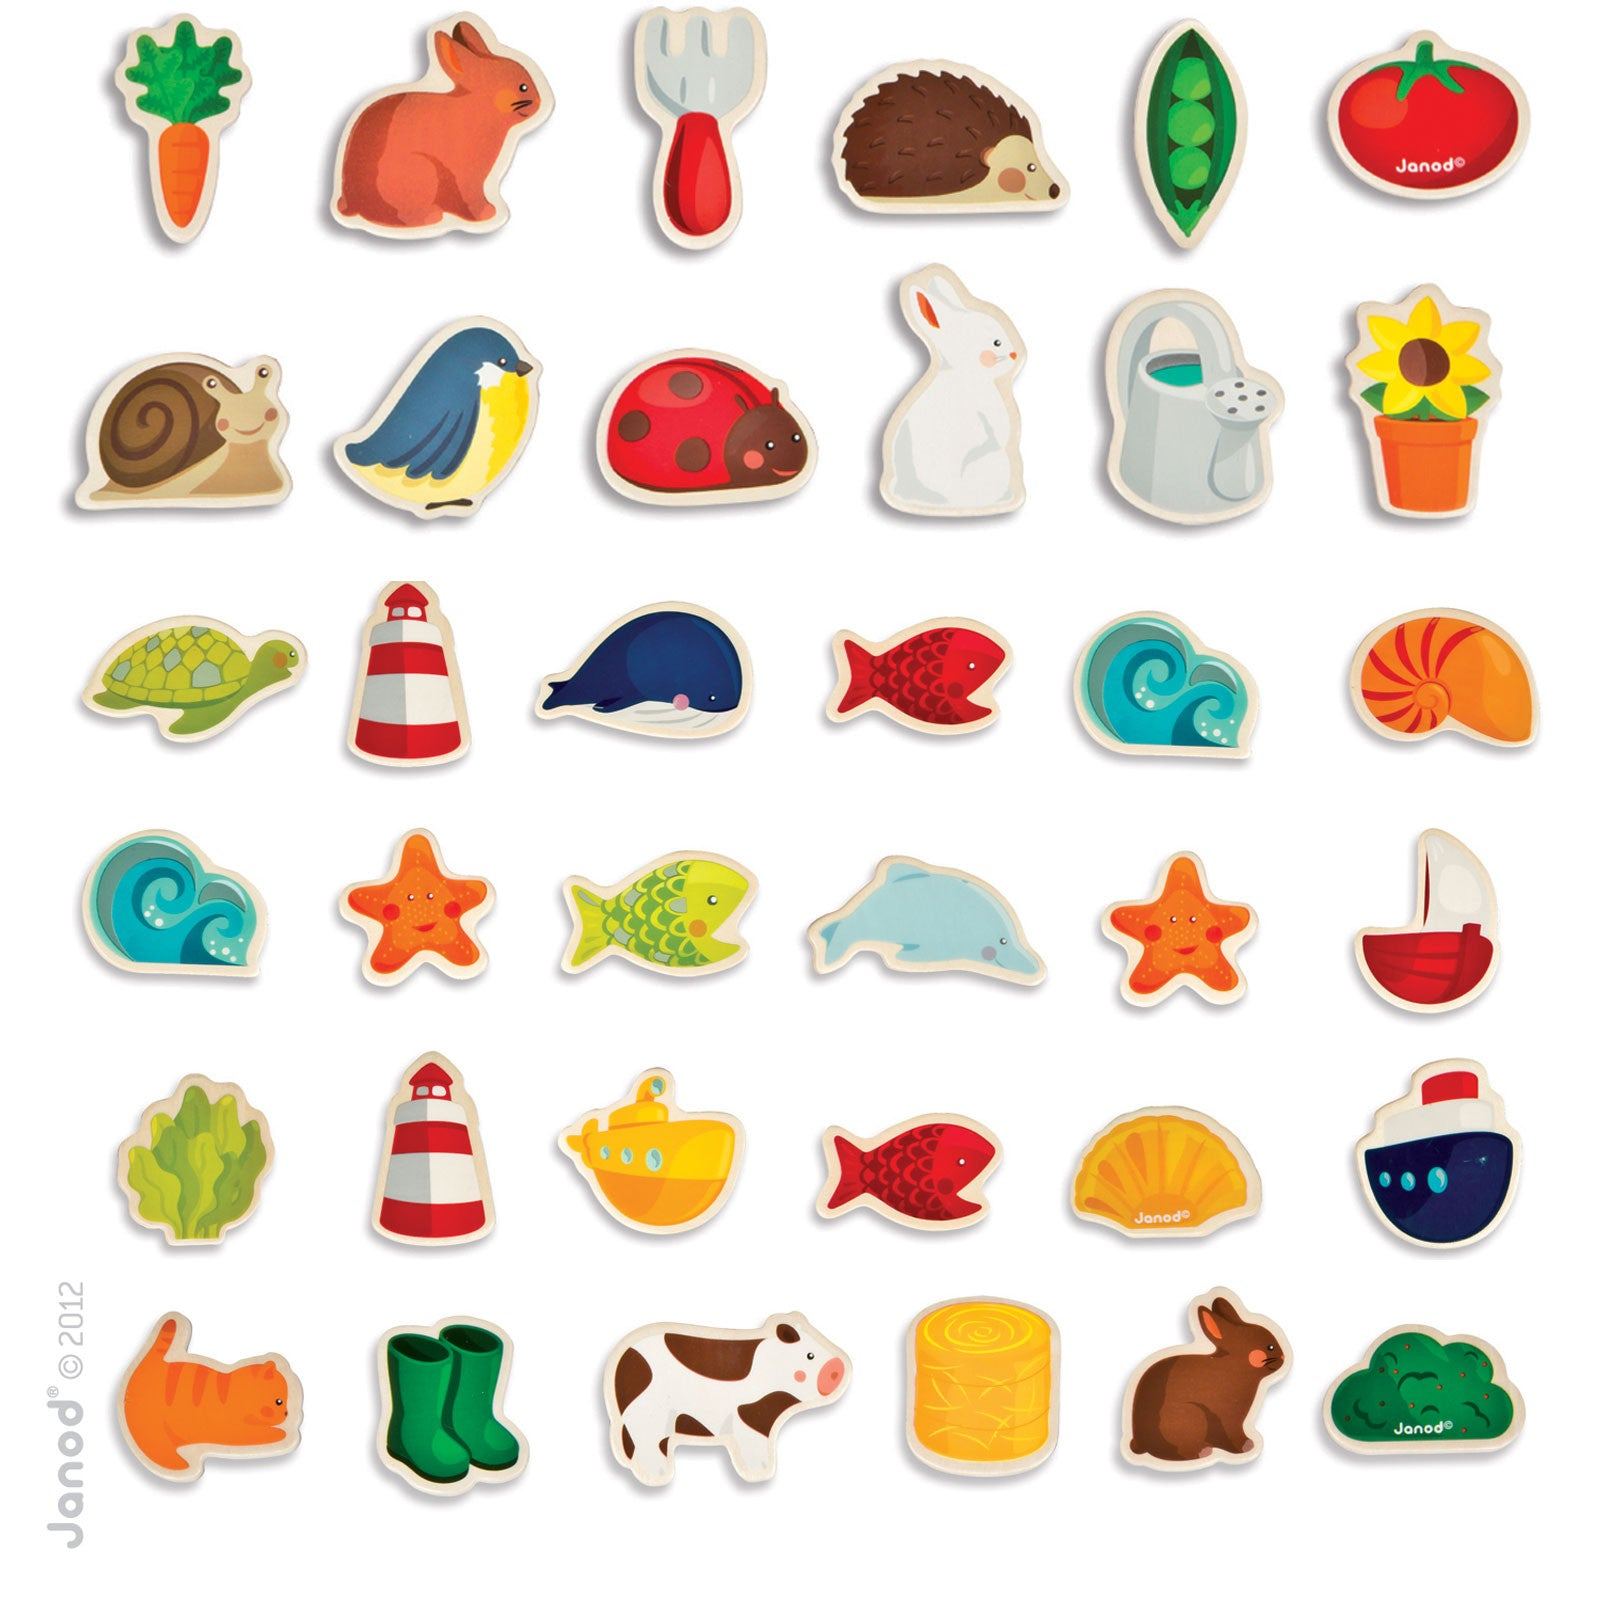 Janod Wooden Magnets - 24 Pcs Janod Magnet Toys at Little Earth Nest Eco Shop